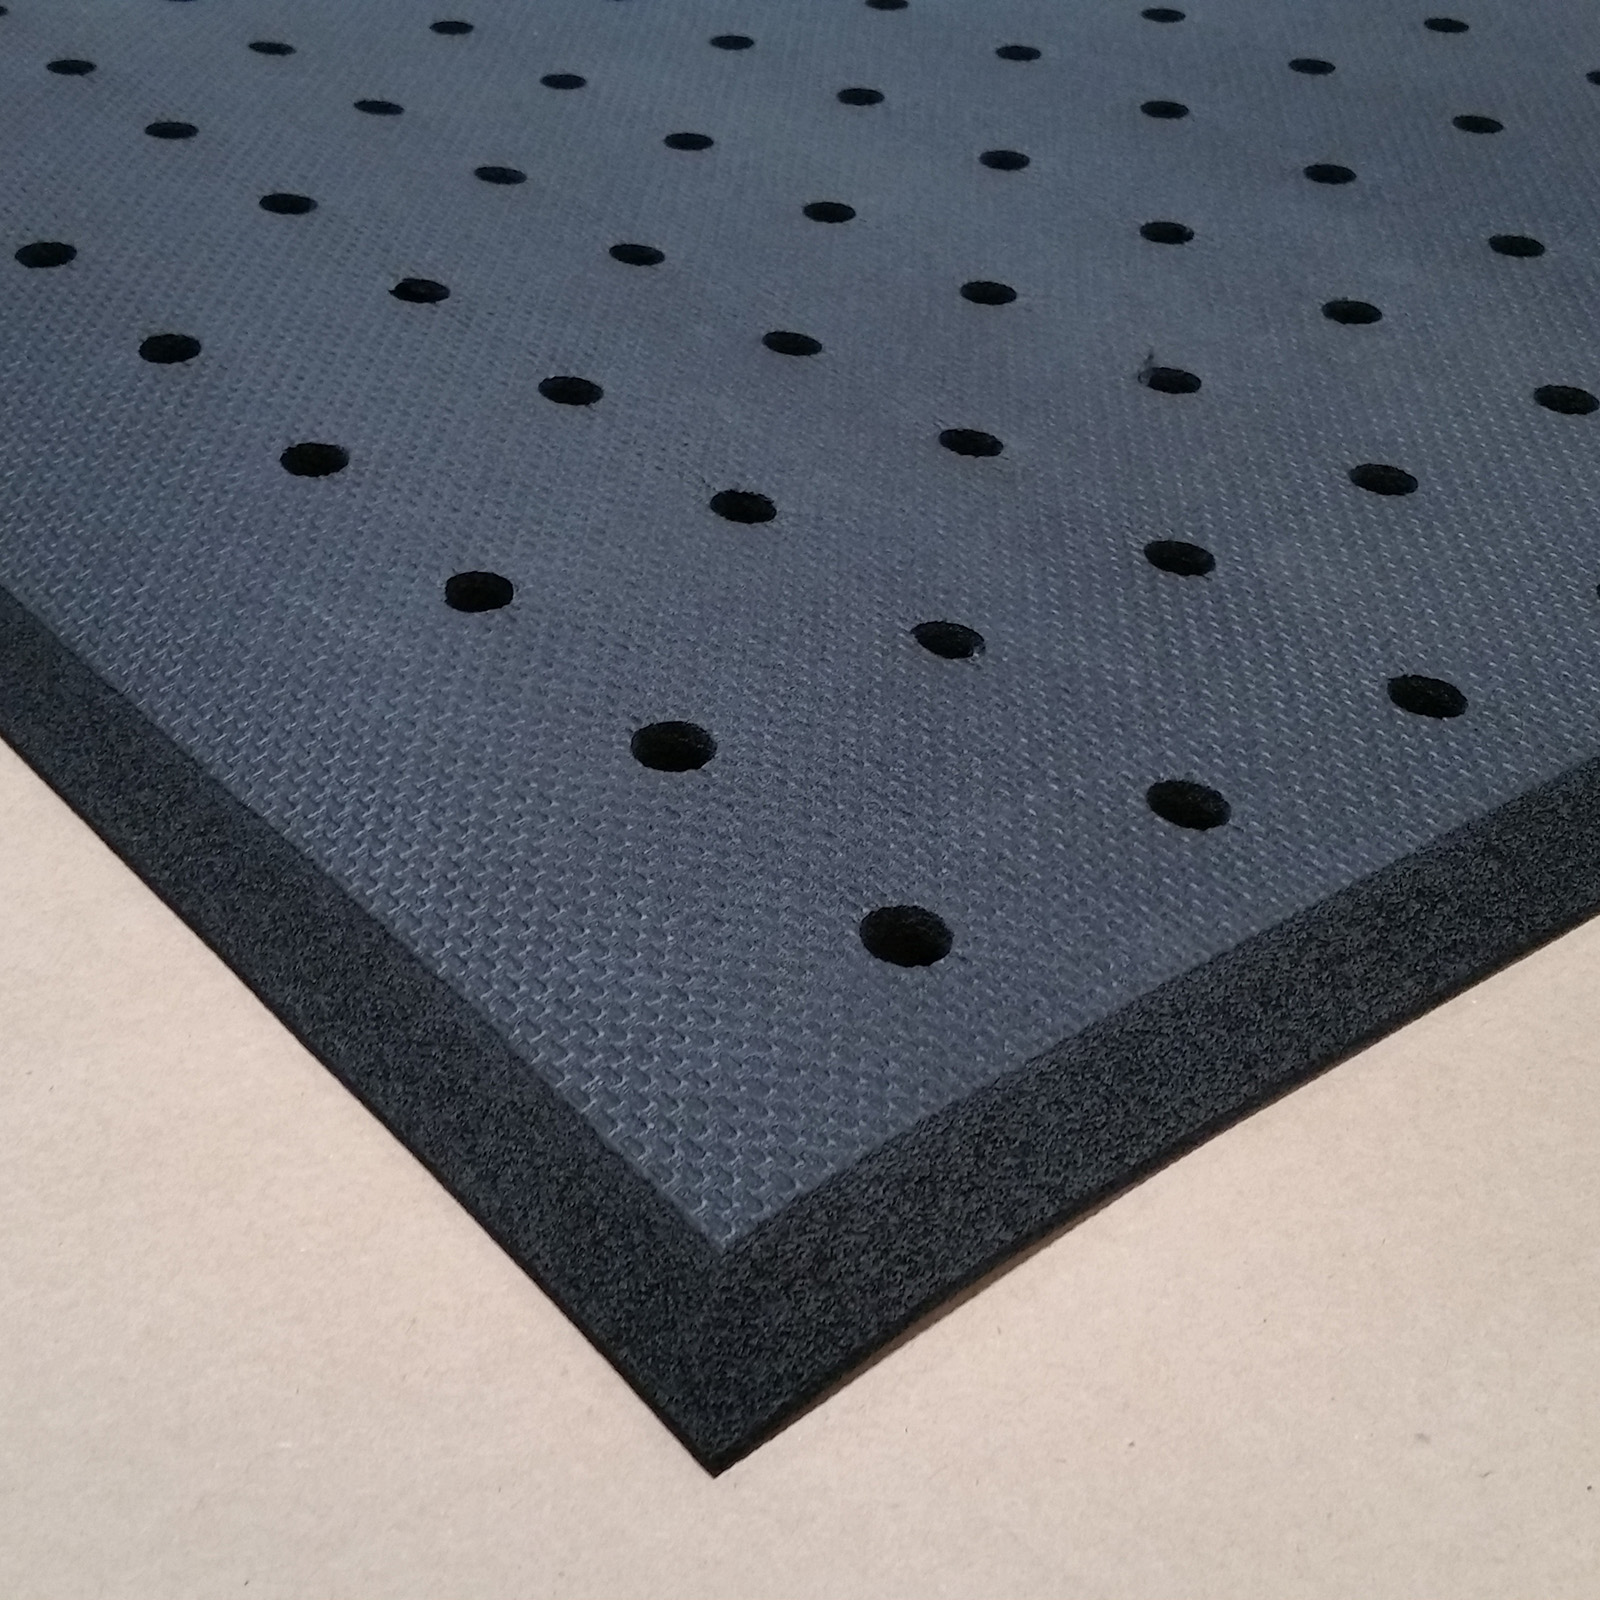 Cactus Mat 2200F-C4H floor mat, anti-fatigue